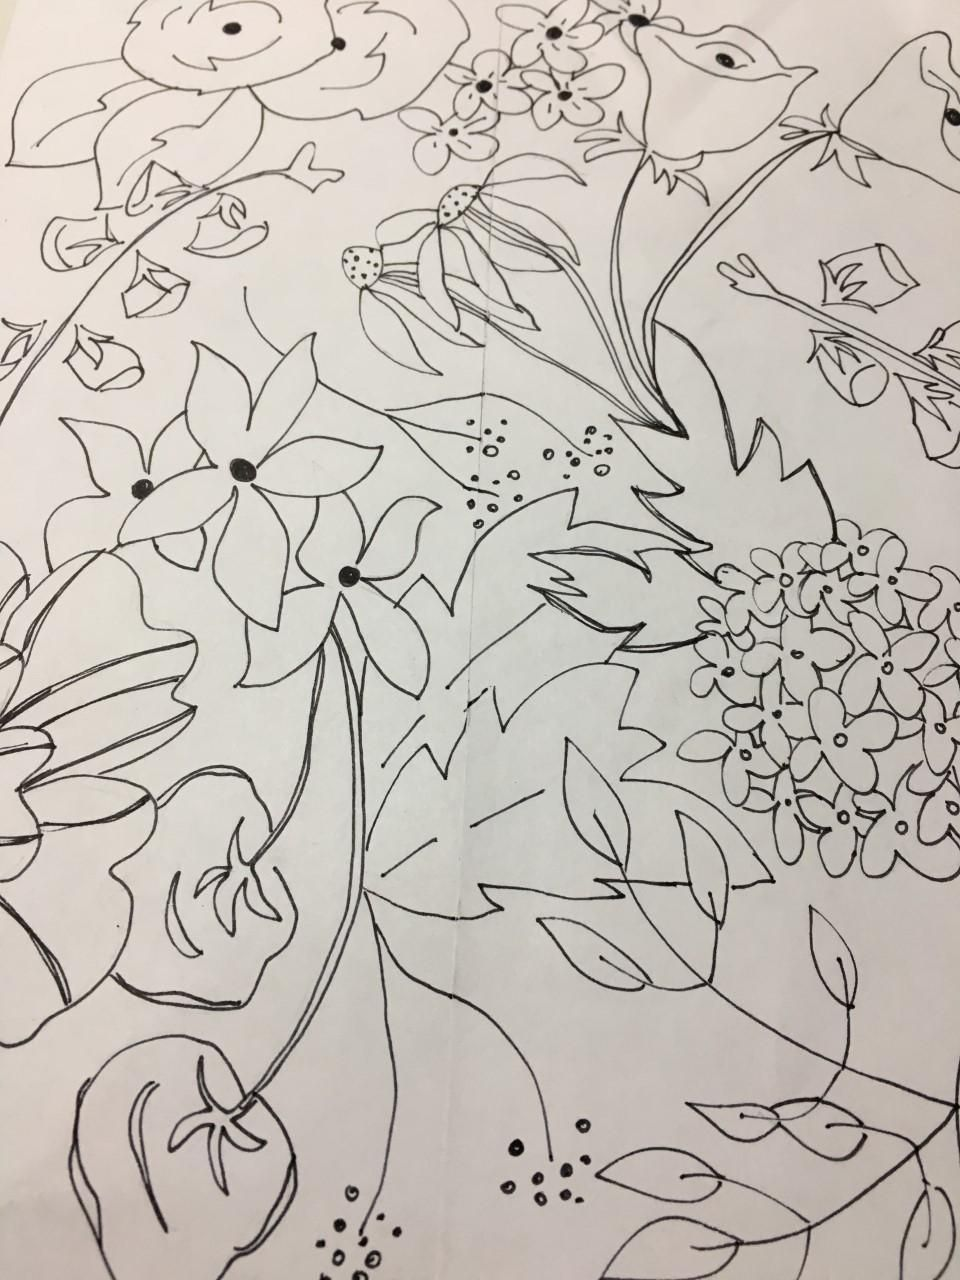 Hand Drawn Practice Tile - image 1 - student project